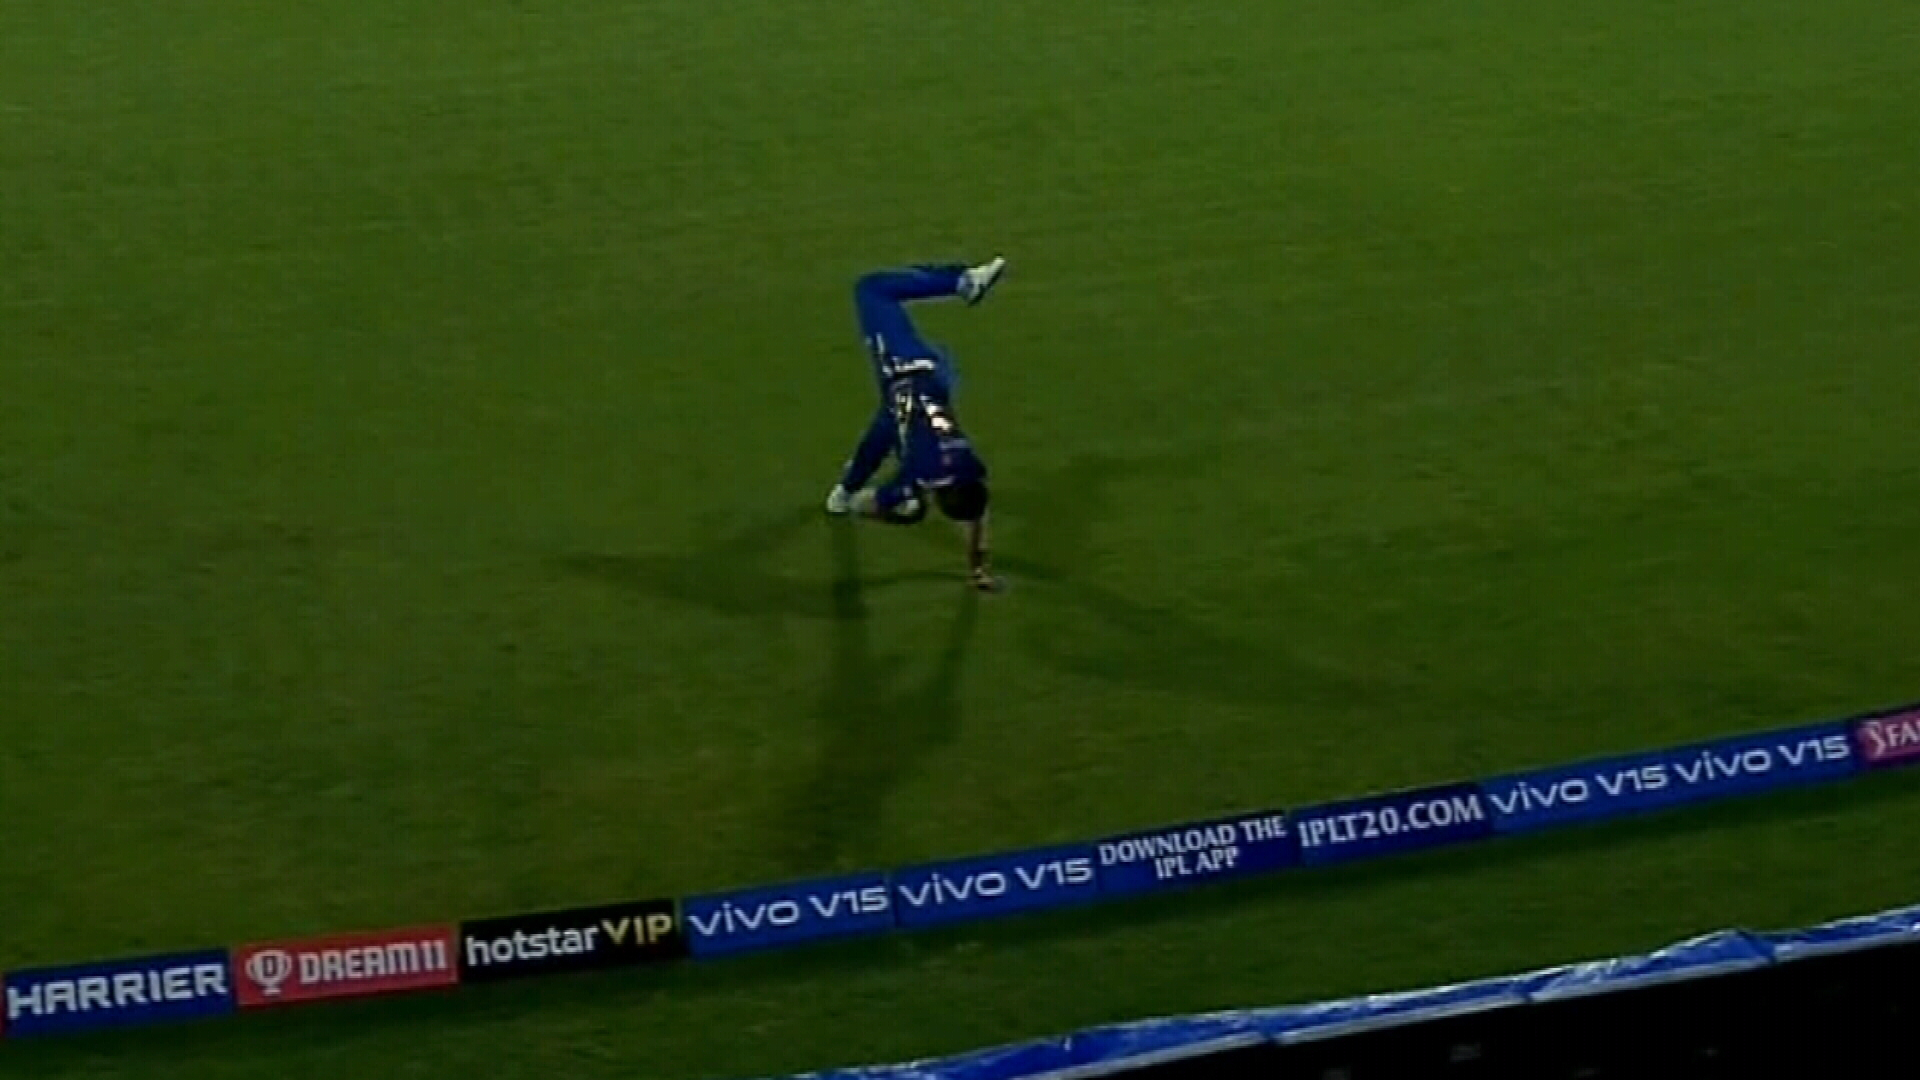 Pollard's incredible somersault catch in IPL